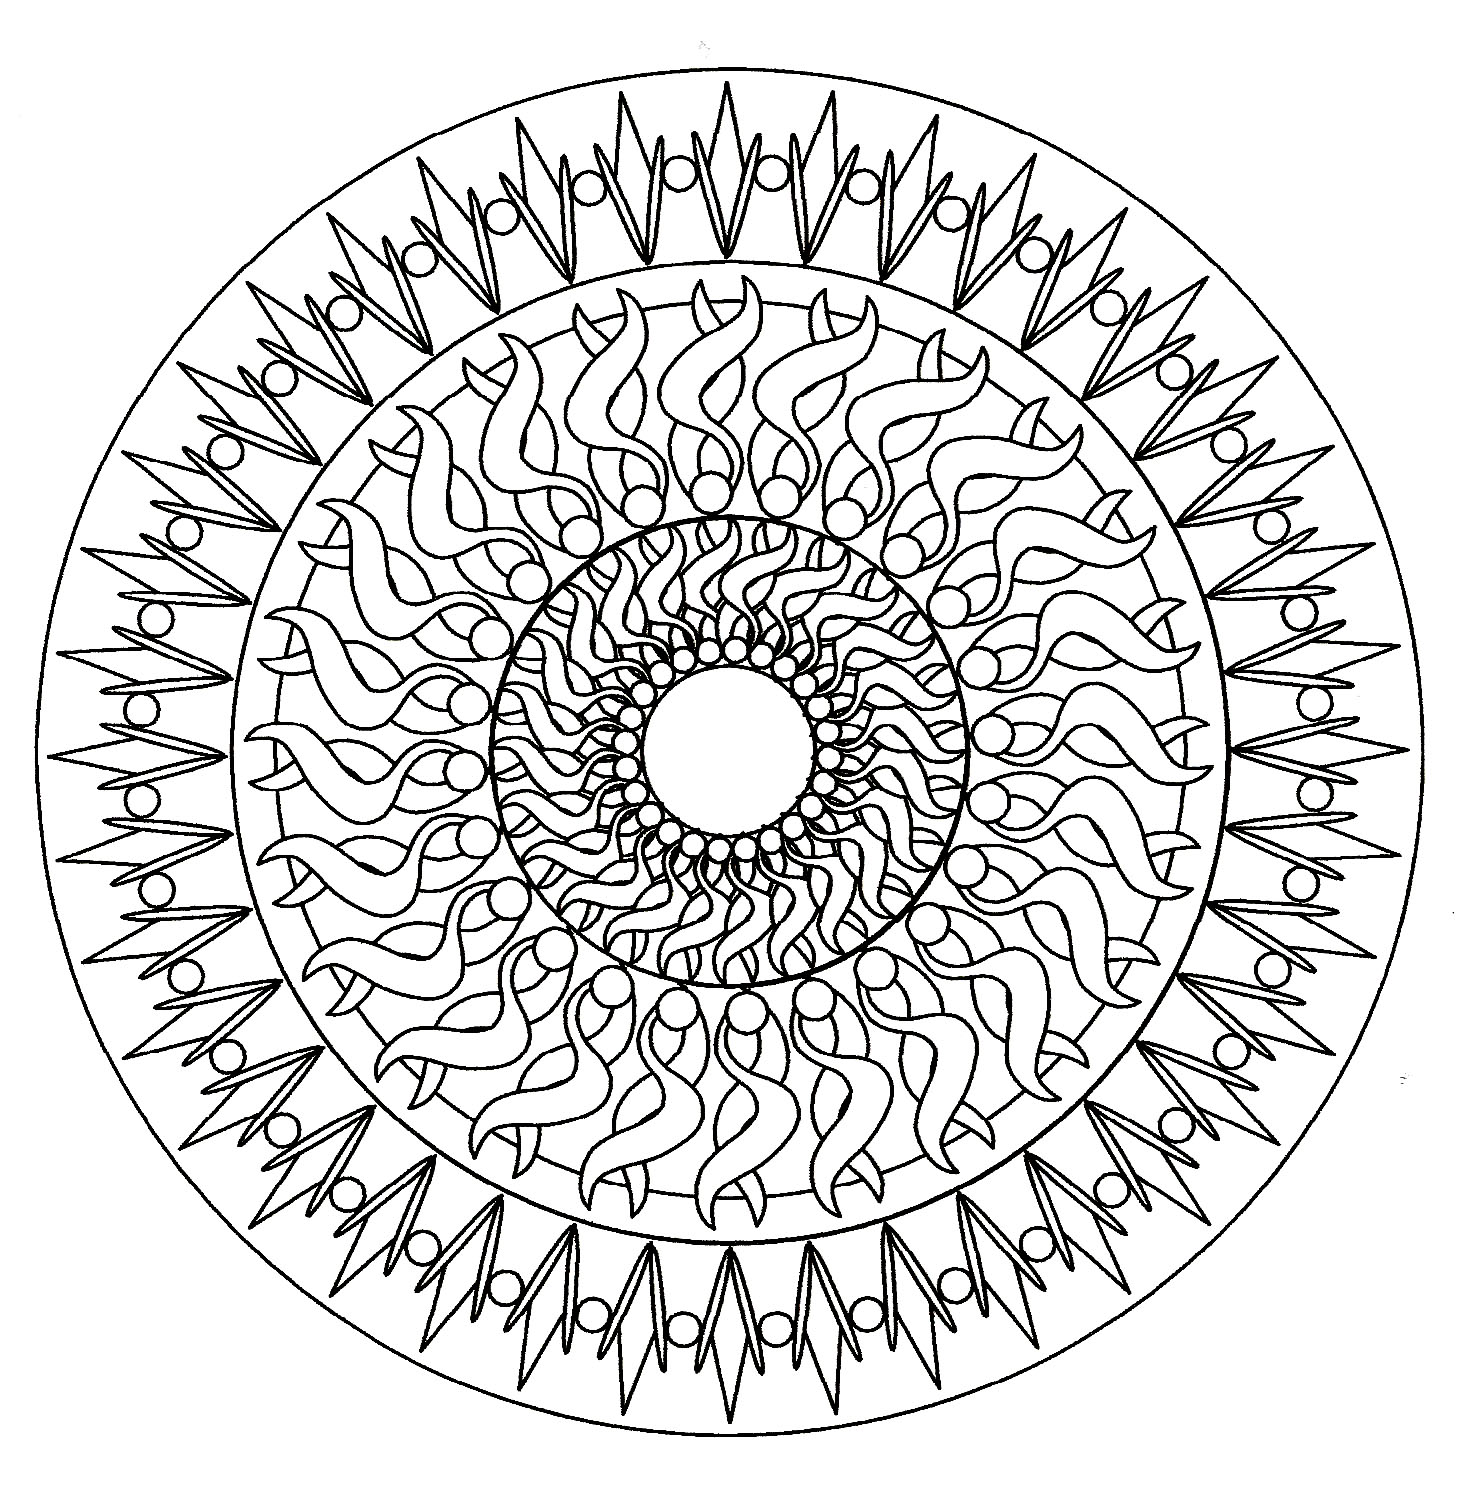 Simple mandala 6 | From the gallery : Mandalas